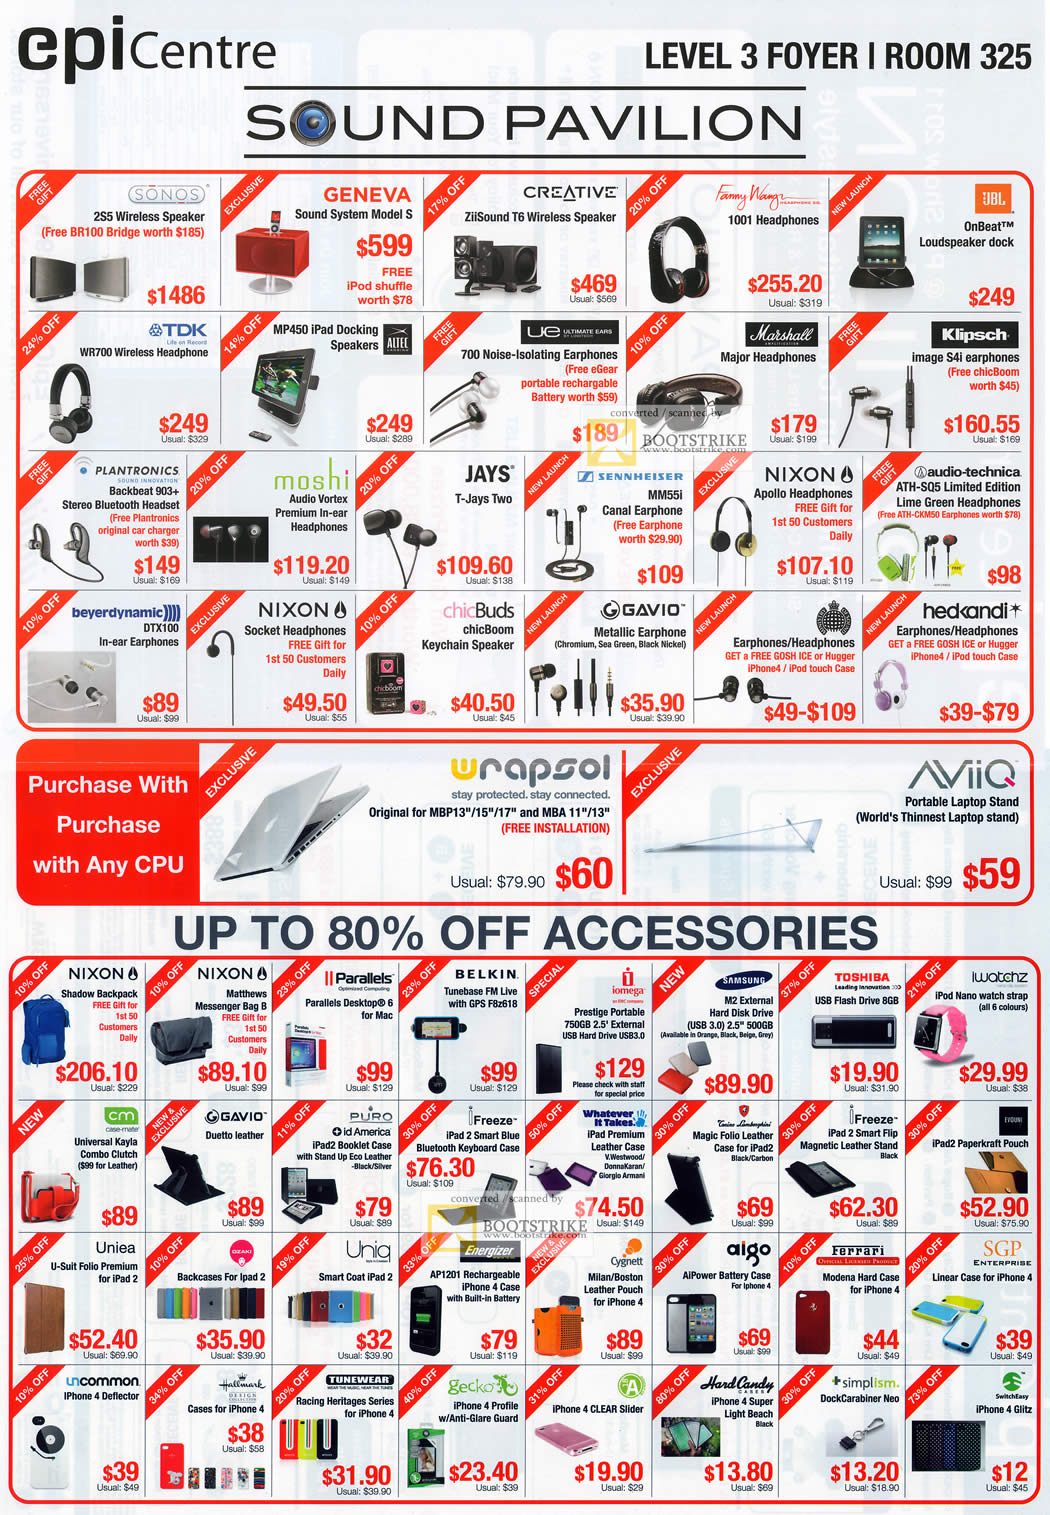 PC Show 2011 price list image brochure of EpiCentre Sound Pavilion Accessories Speaker Headset Headphones Earphones Case IPad IPhone Folio Flash USB Ultimate Ears Klipsch Jays Chicbuds Gavio TDK Belkin